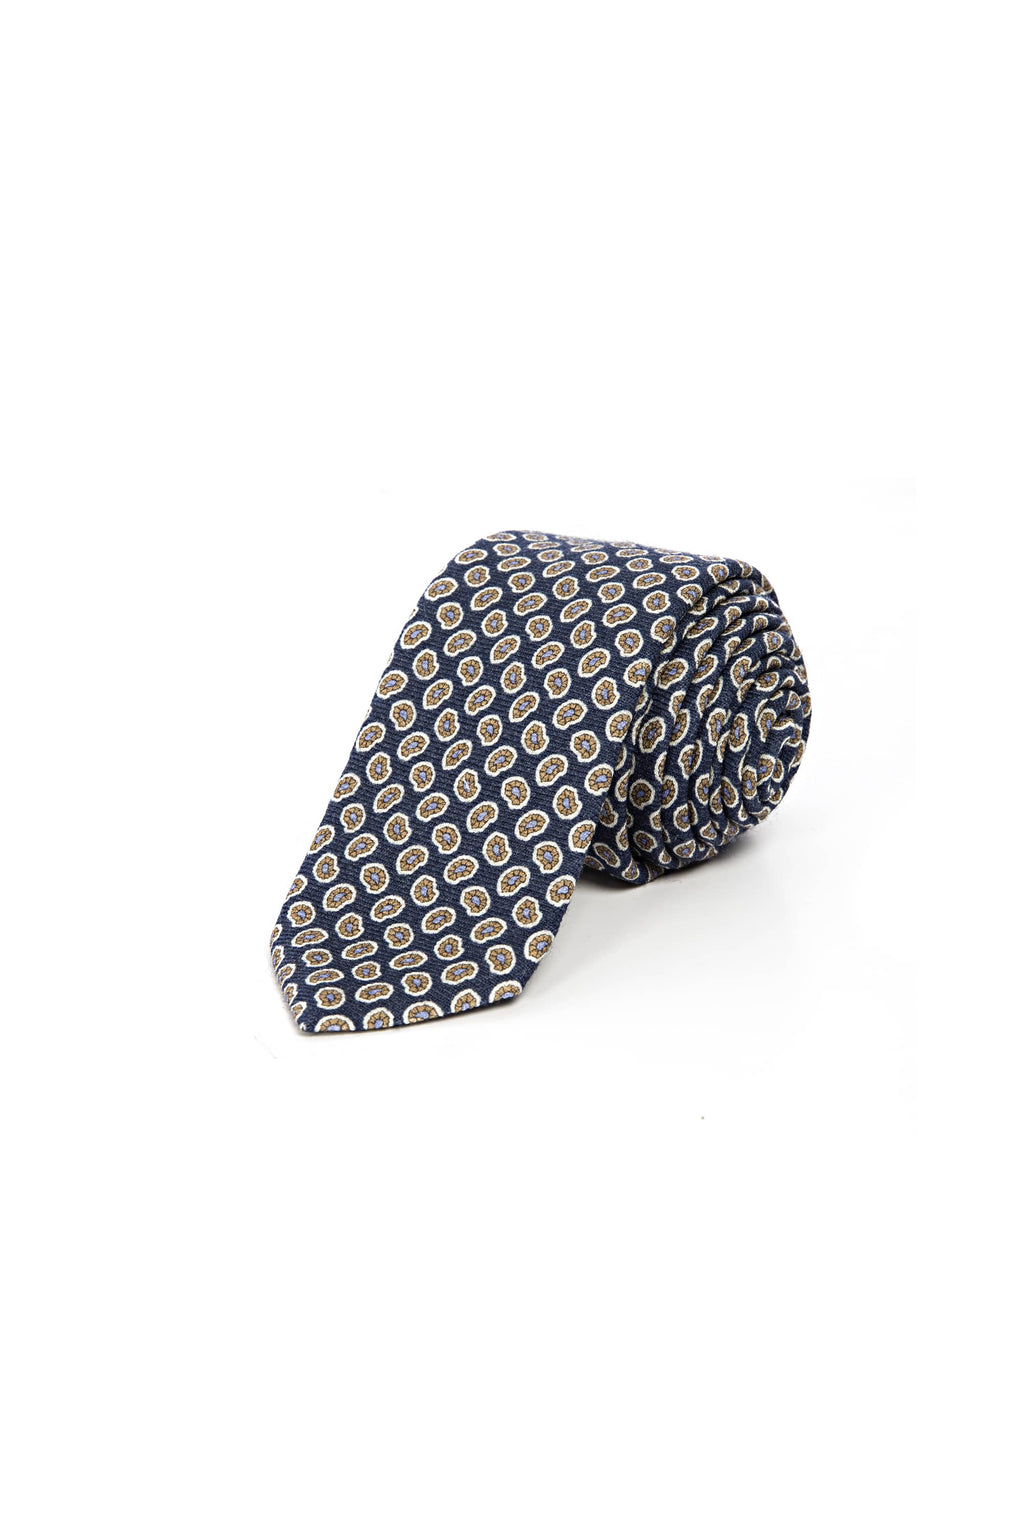 Romano Botta Navy Flowered Wool Tie